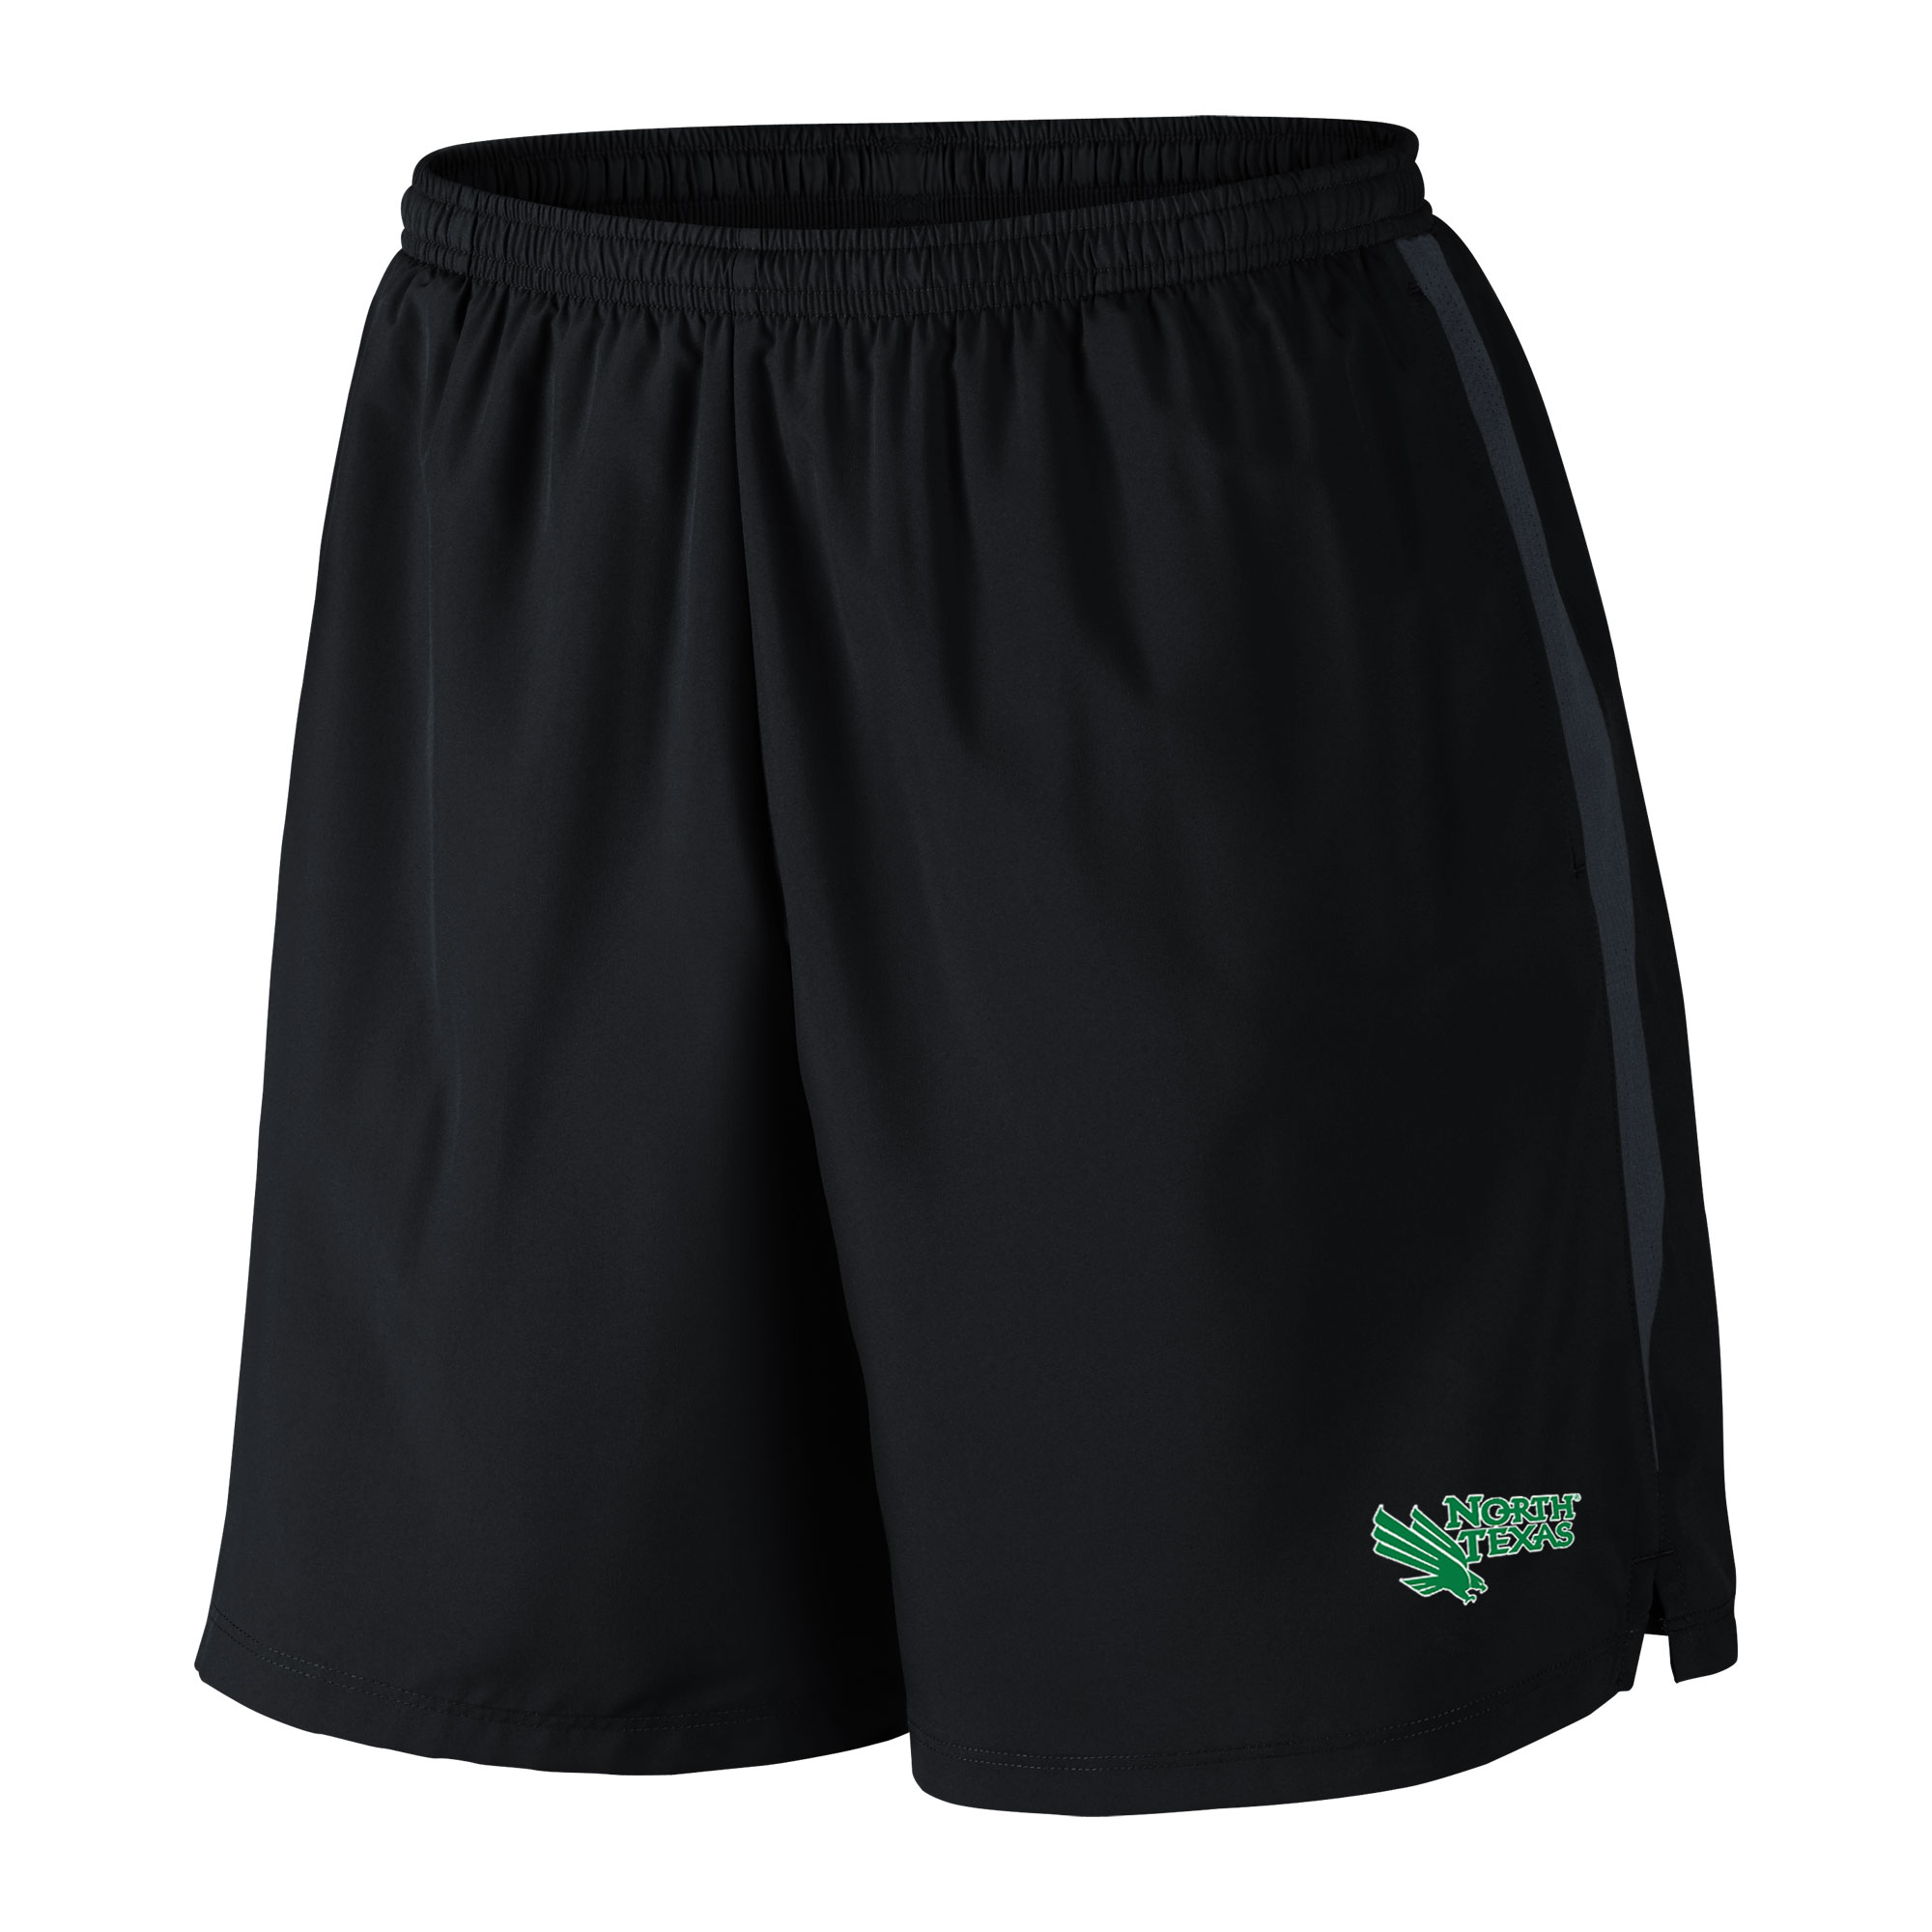 MEN'S NIKE CHALLENGER SHORT